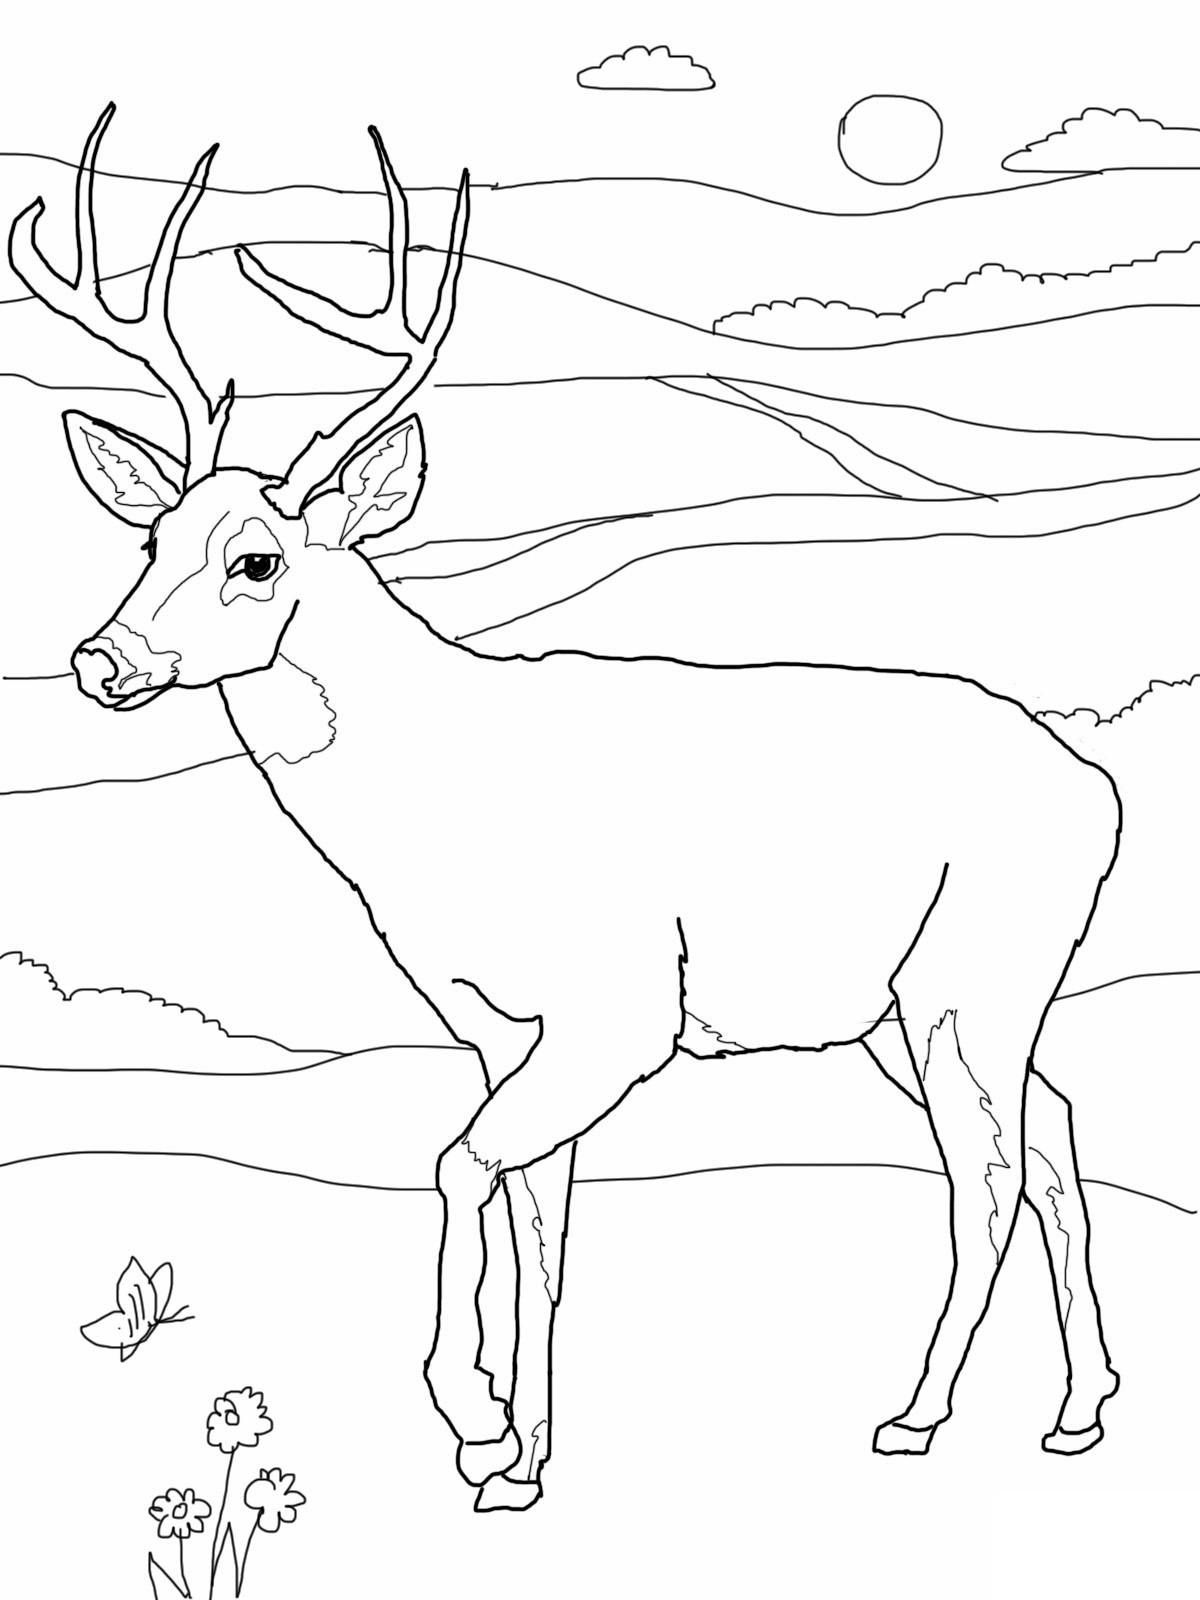 deer coloring pages - photo#10